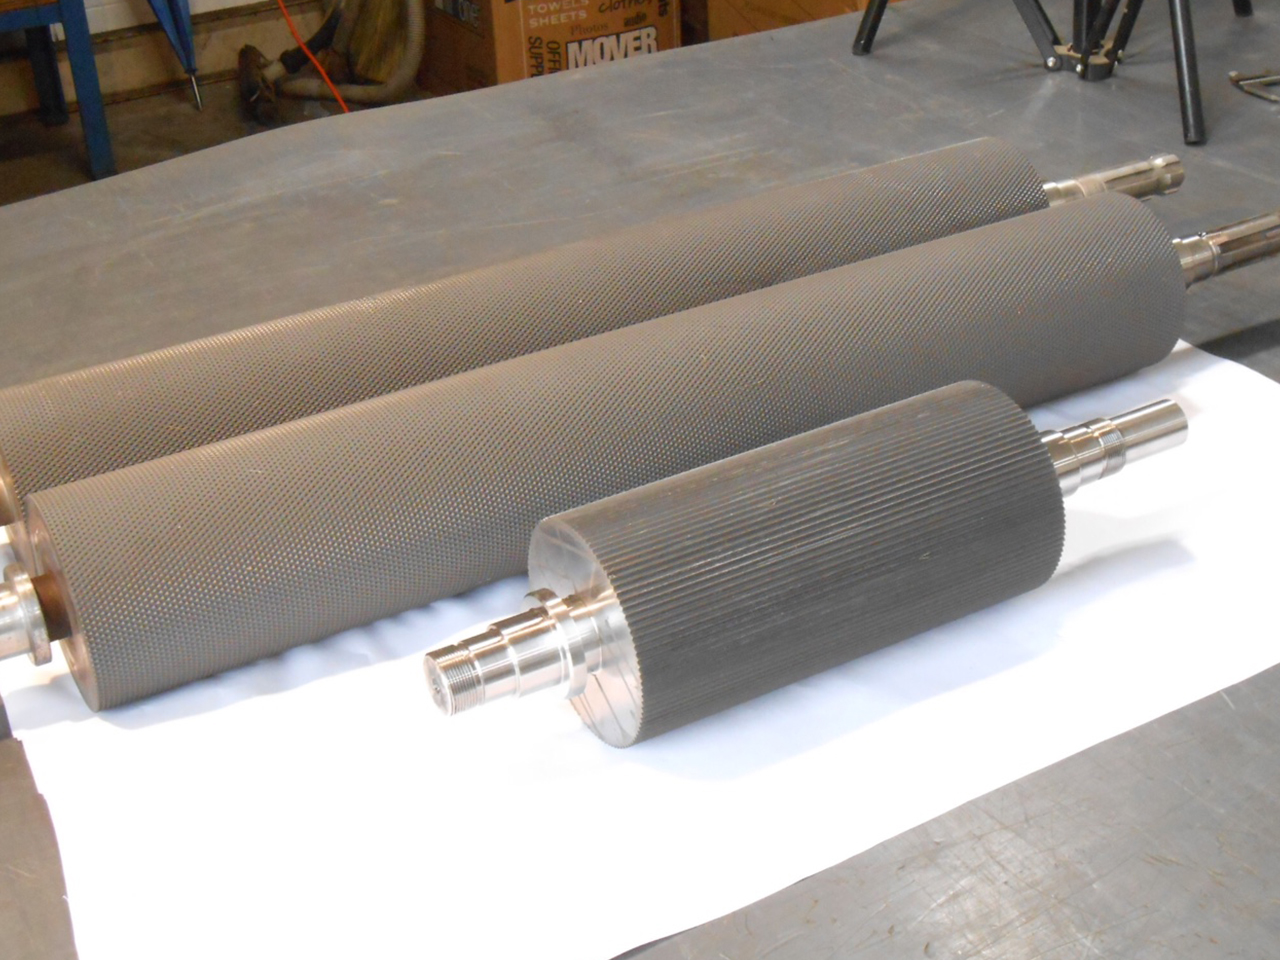 Feed Rolls   Great Lakes Industrial Knife Co.   High Quality Machine Knives